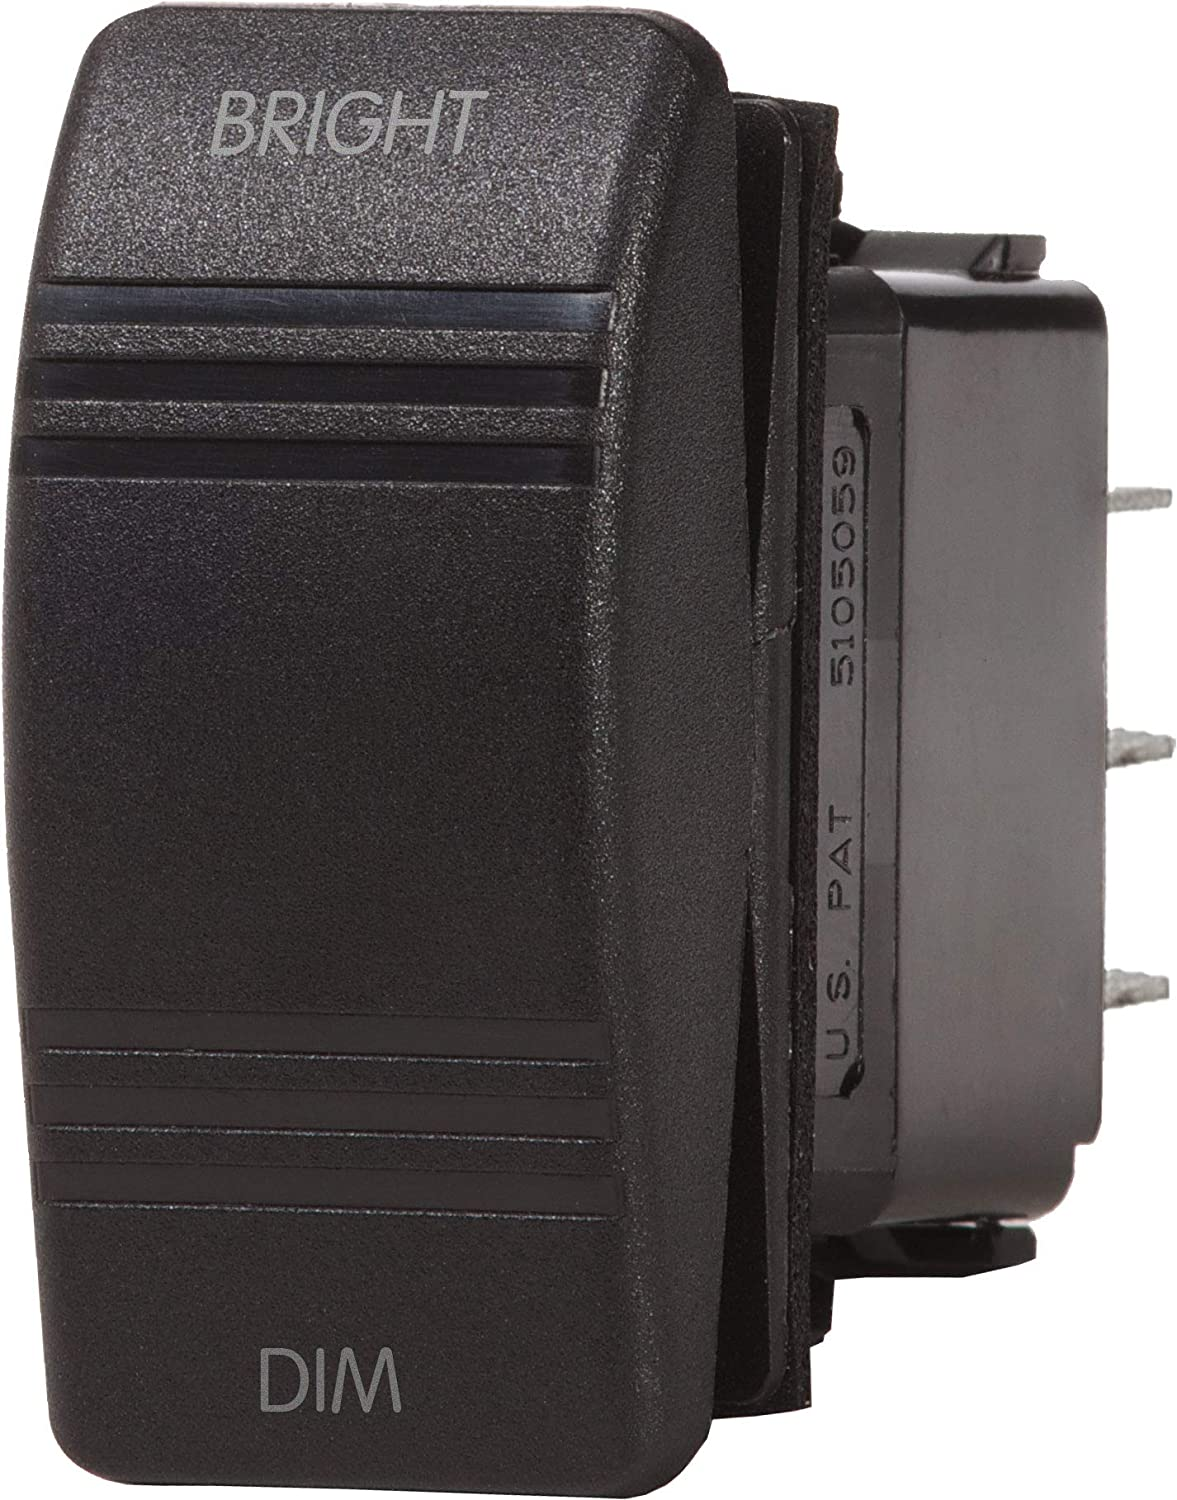 Blue Sea Systems Contura Dimmer Control (ON)-Off-(ON) SPDT Switch, Black